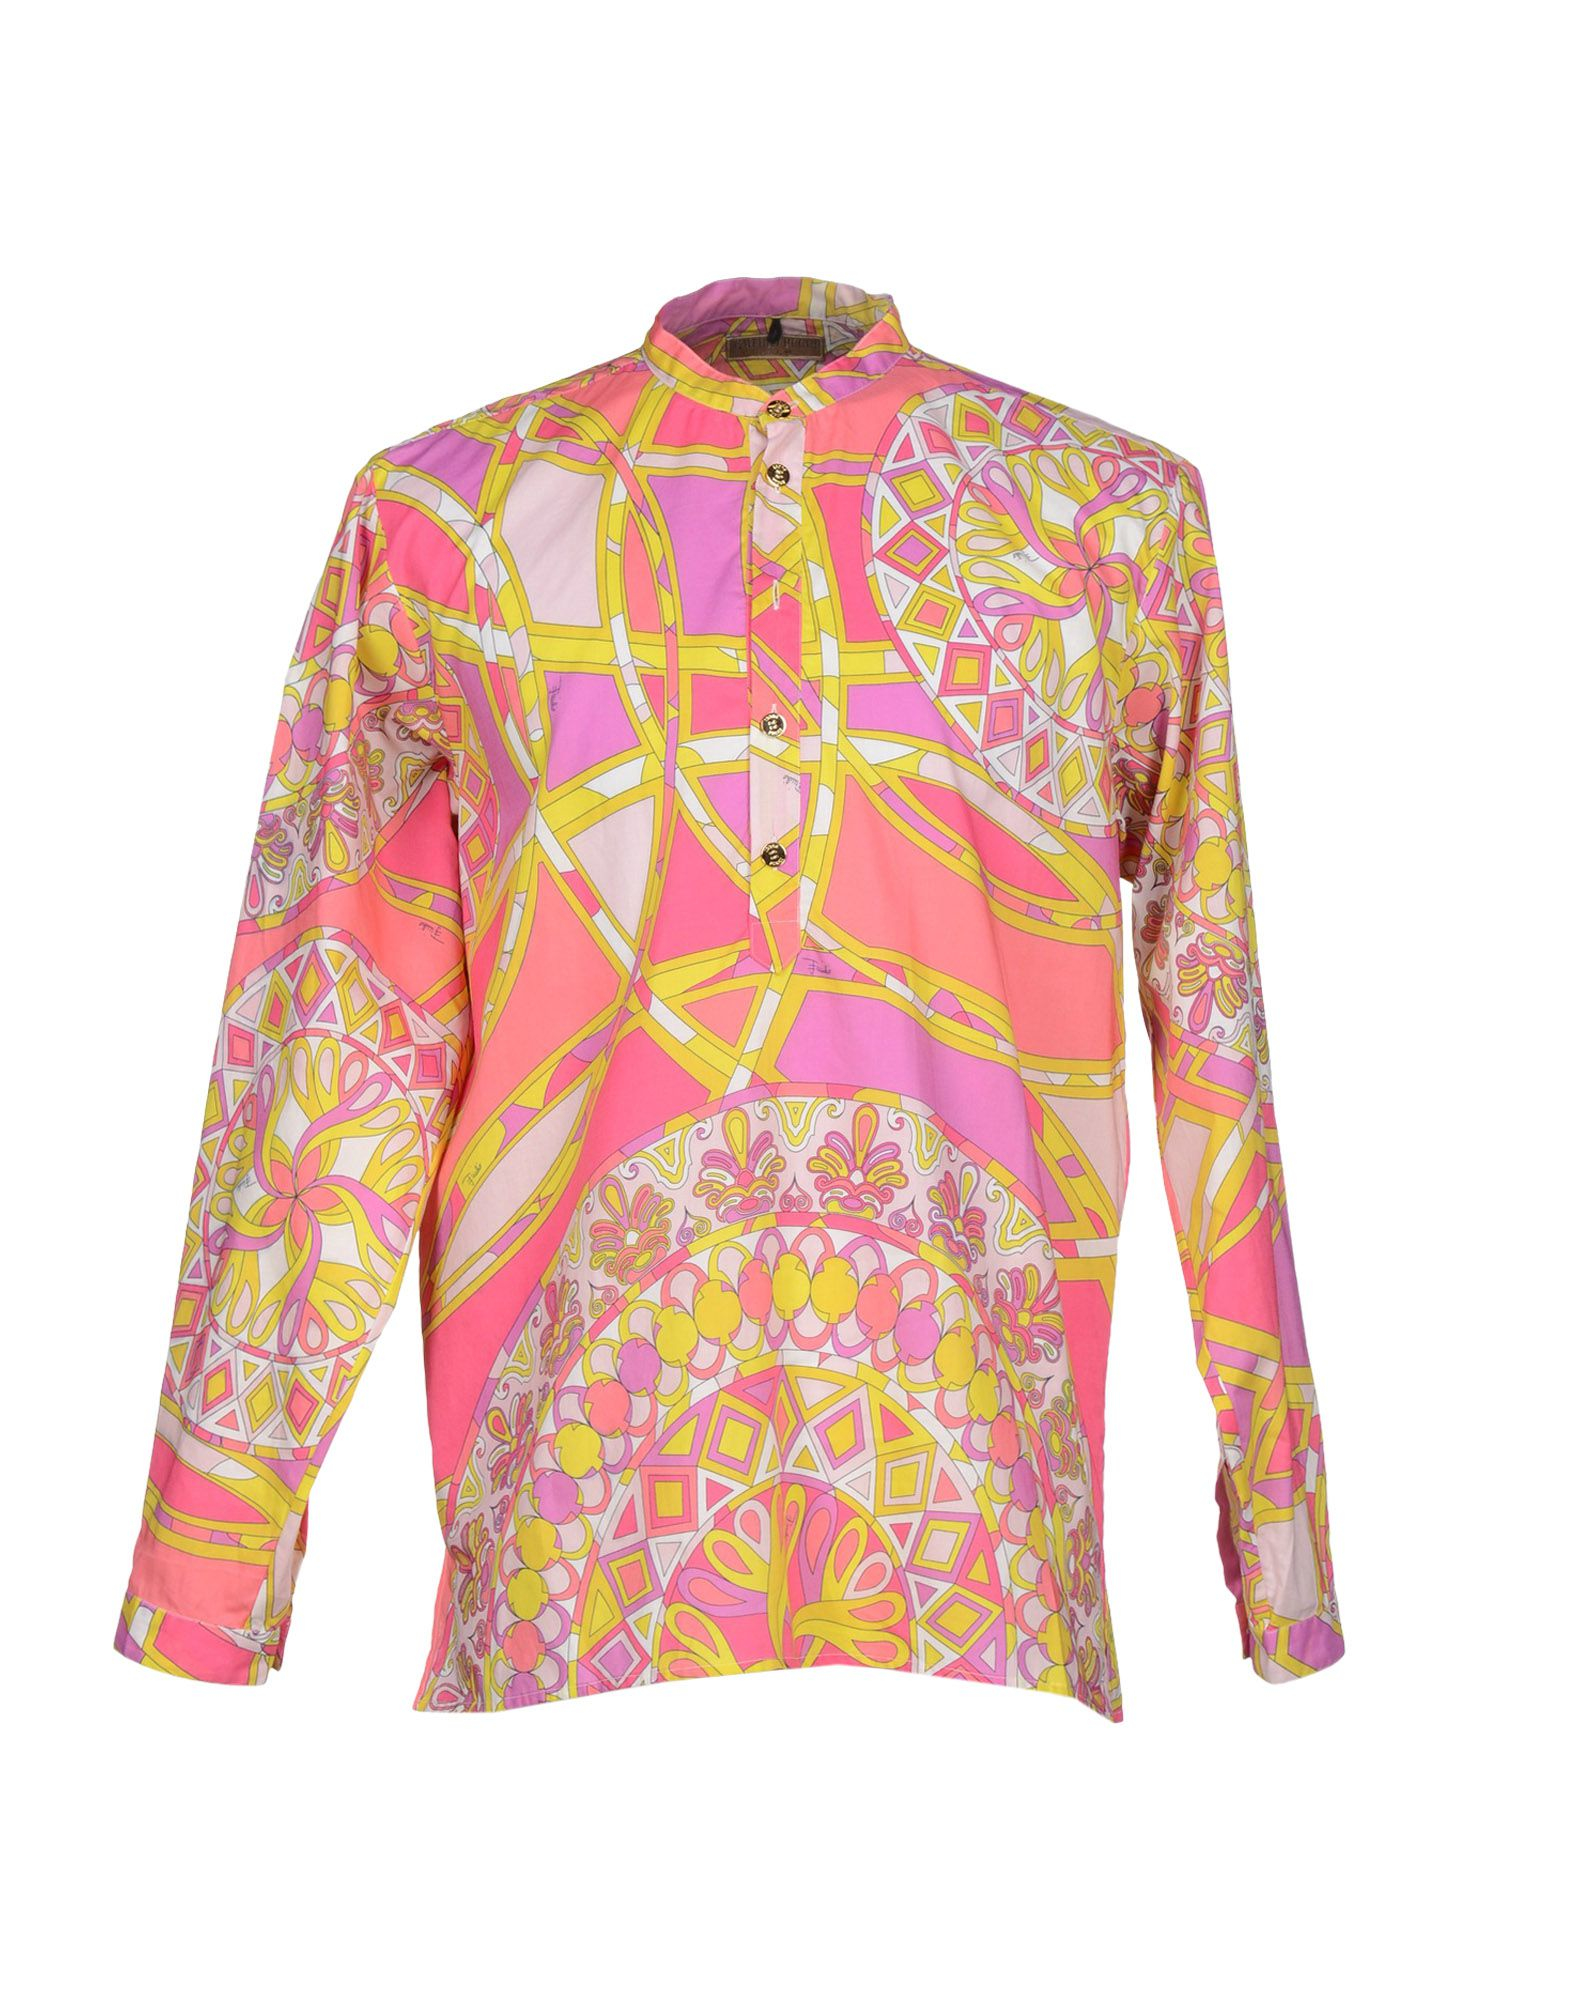 eaa22114b99d Lyst - Emilio Pucci Shirt in Pink for Men